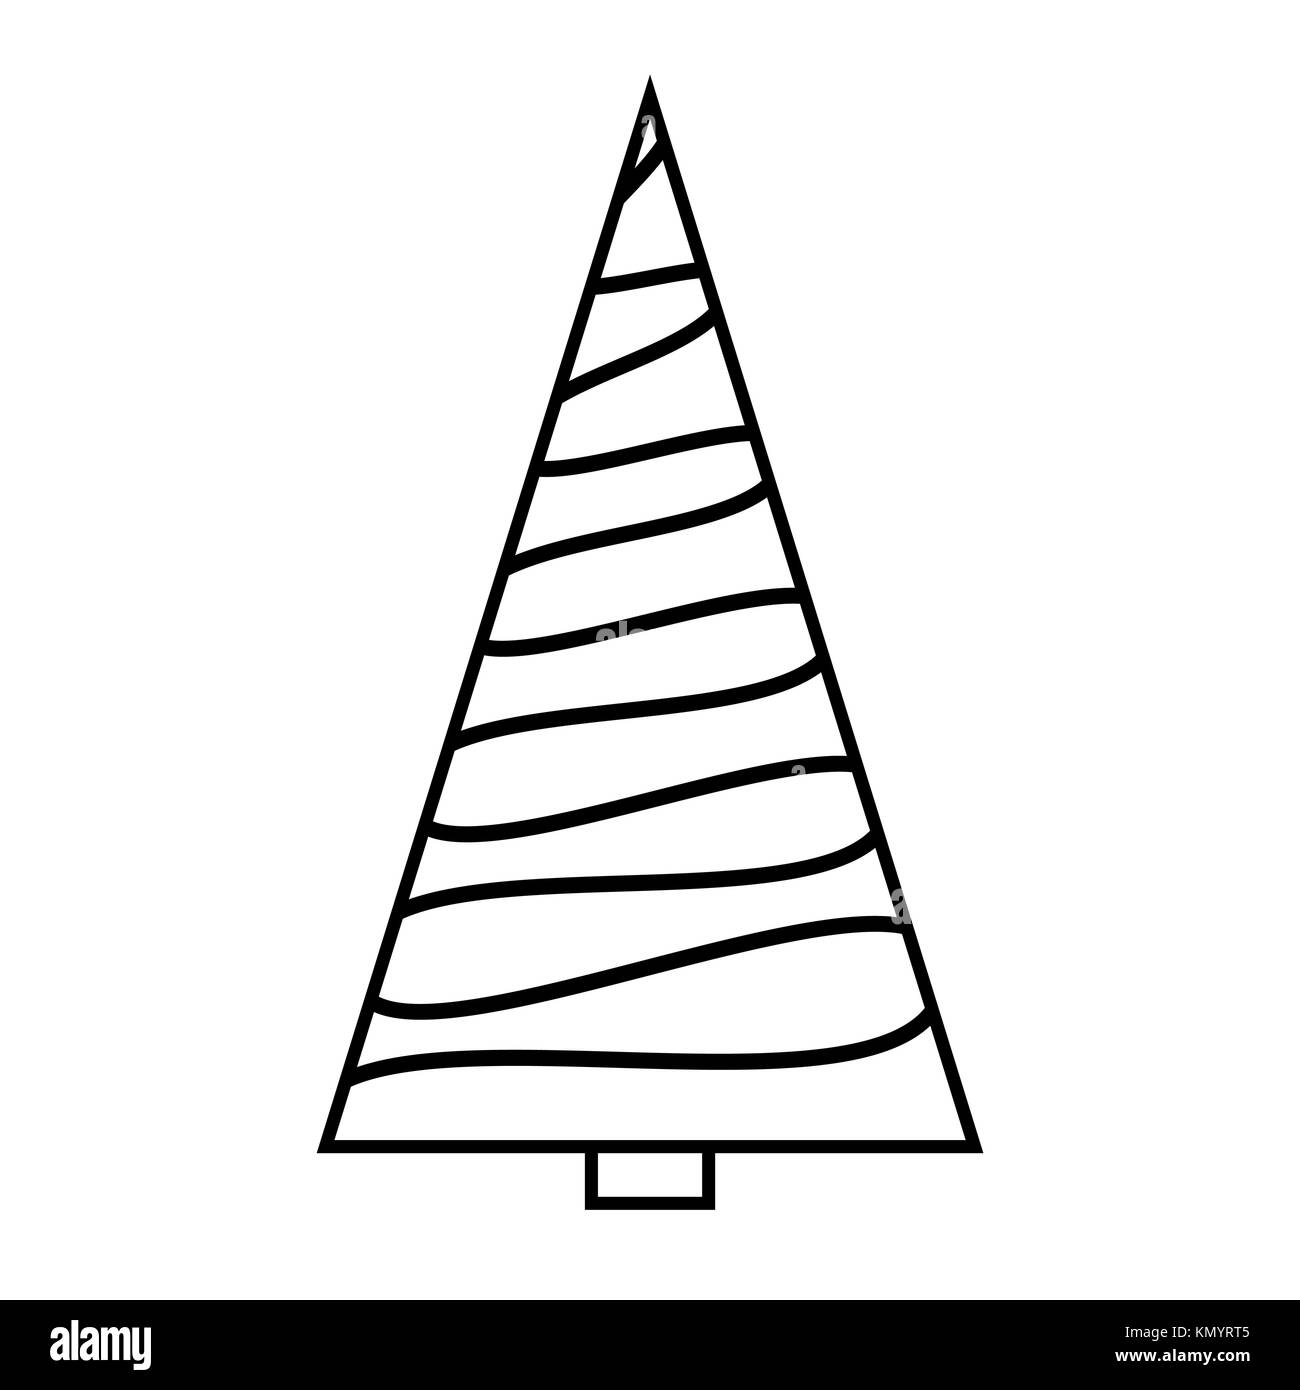 Christmas Tree Clipart Outline.Tree Clipart Outline Stock Photos Tree Clipart Outline